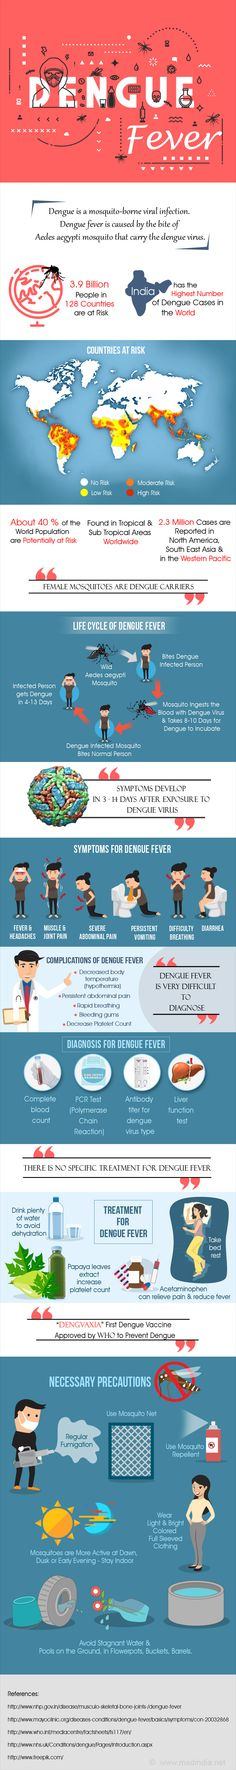 Dengue fever infographic includes all the vital information you need to know about dengue fever. Dengue Fever, Microbiology, Common Sense, Infographics, Desktop, Layout, Community, Health, Dress